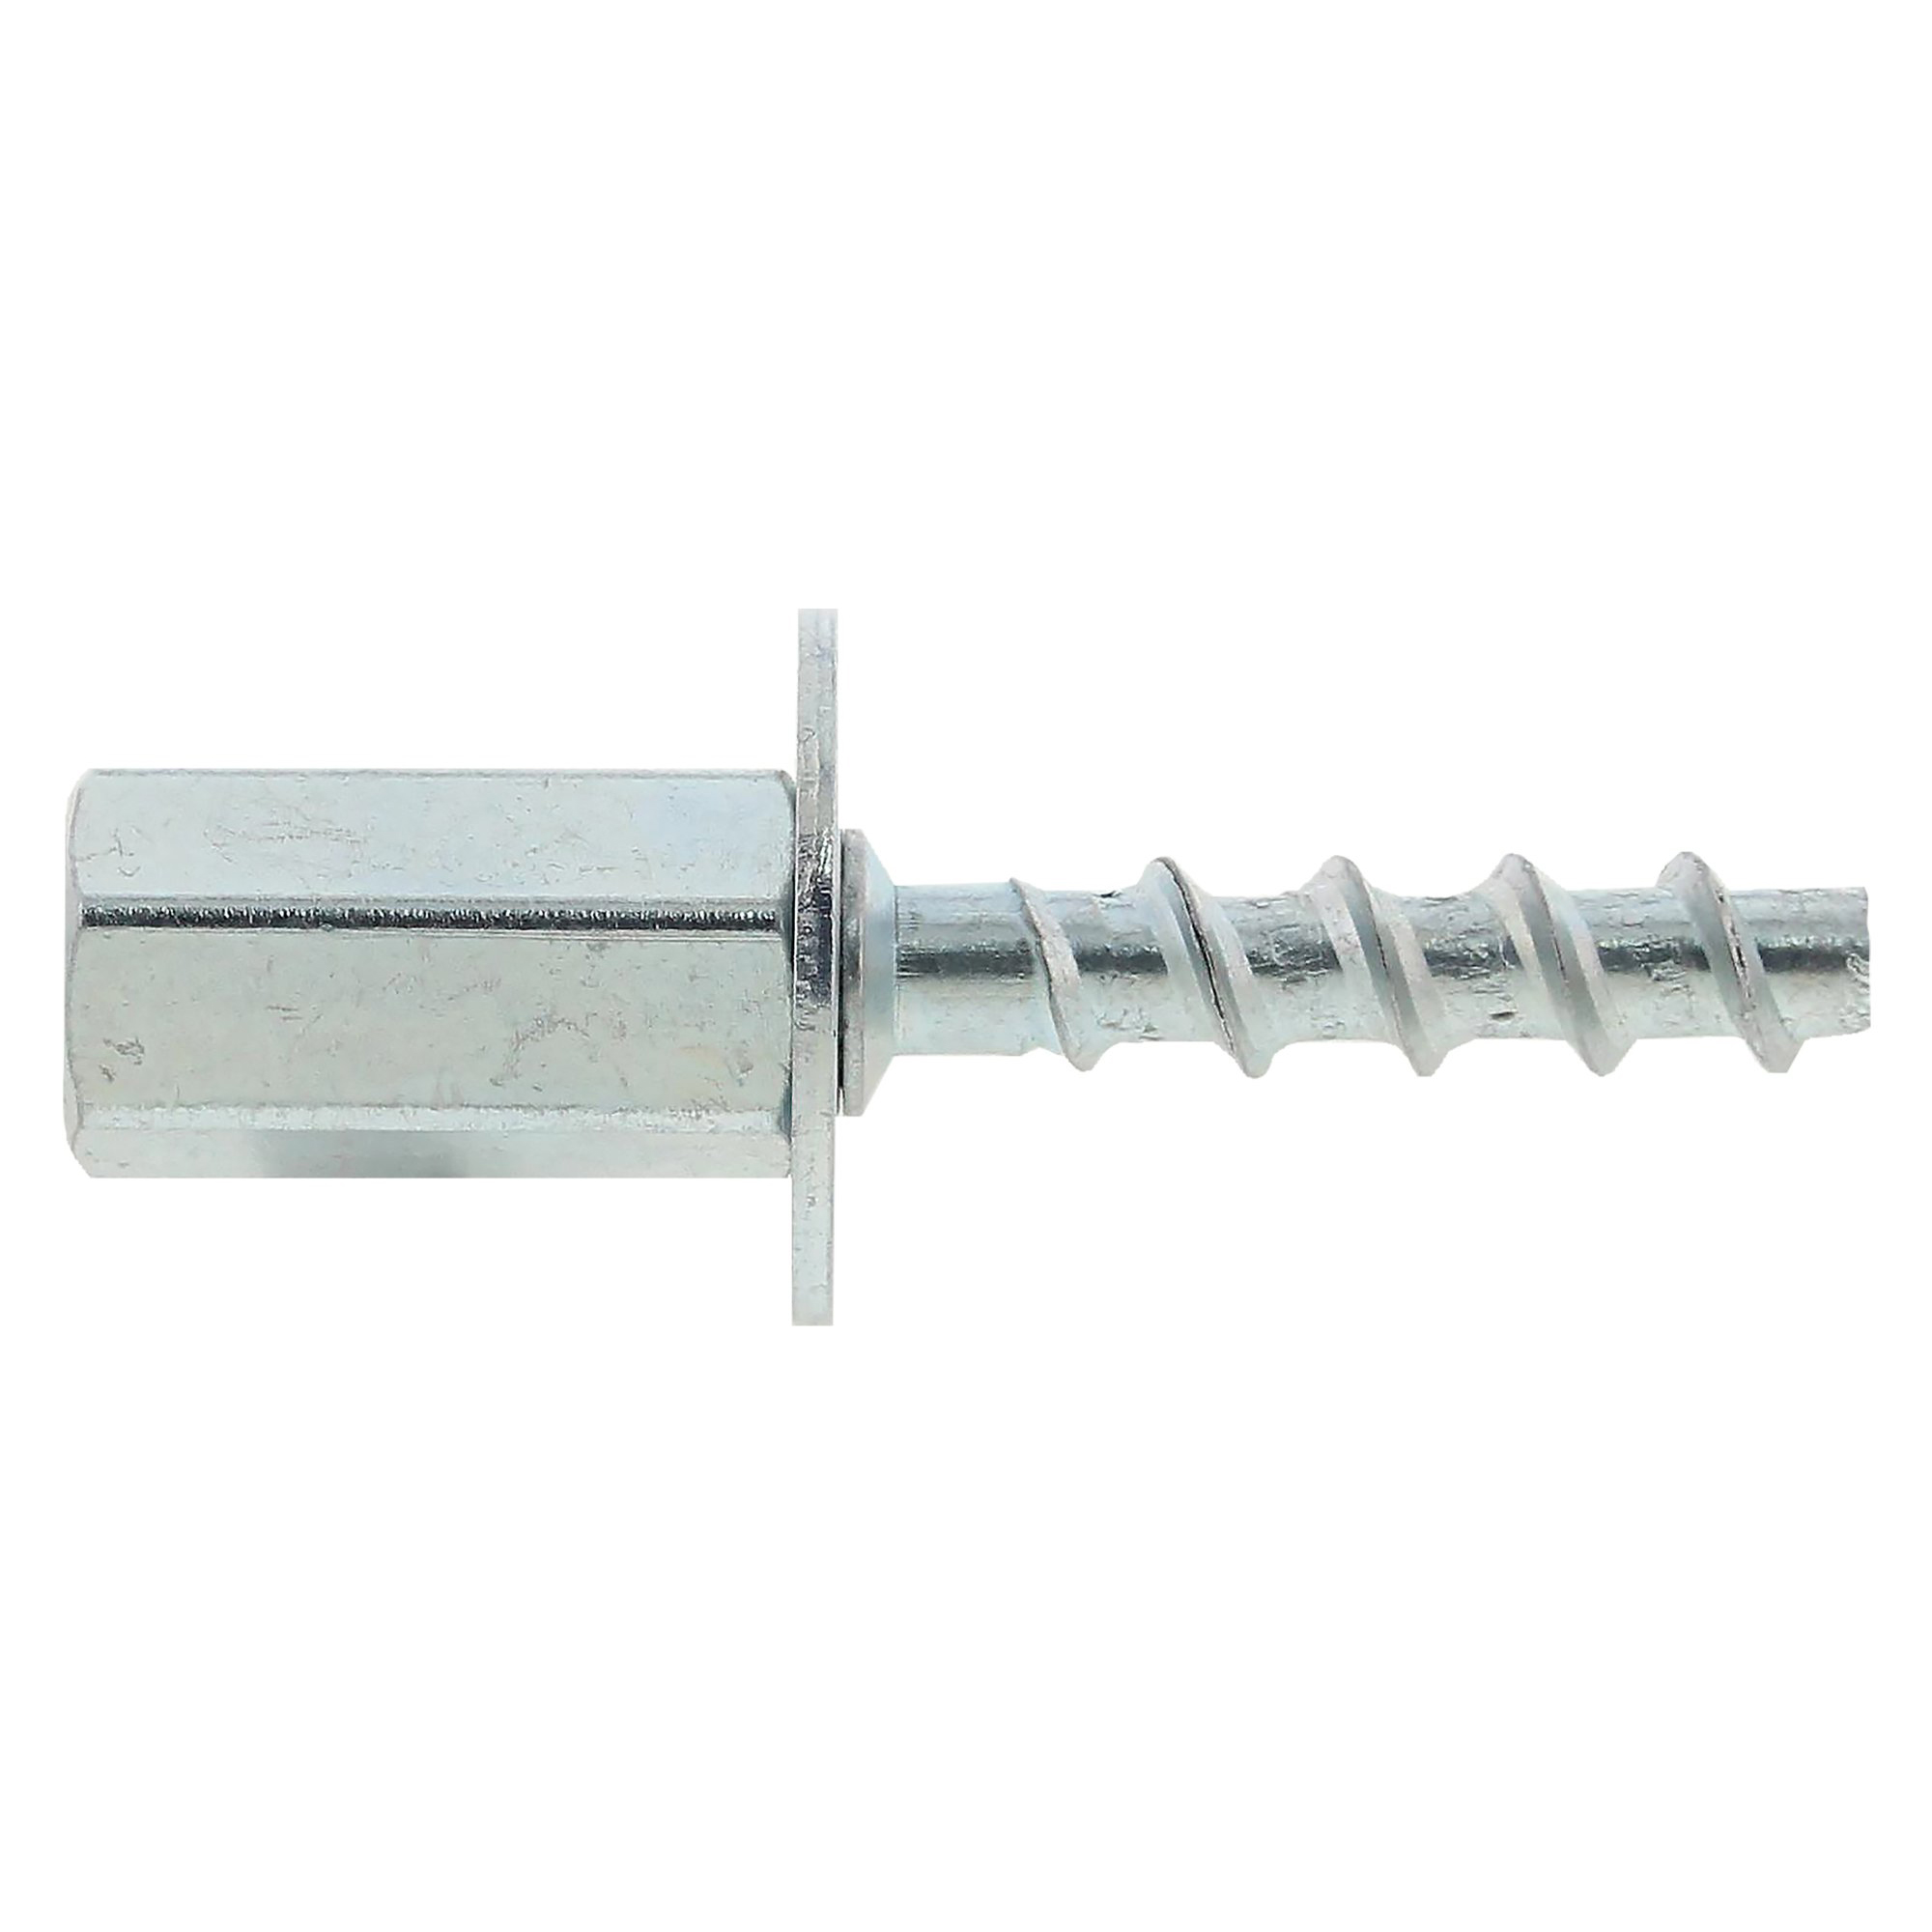 ITW TAPCON ROD CONCRETE SCREW (058785, 058786)